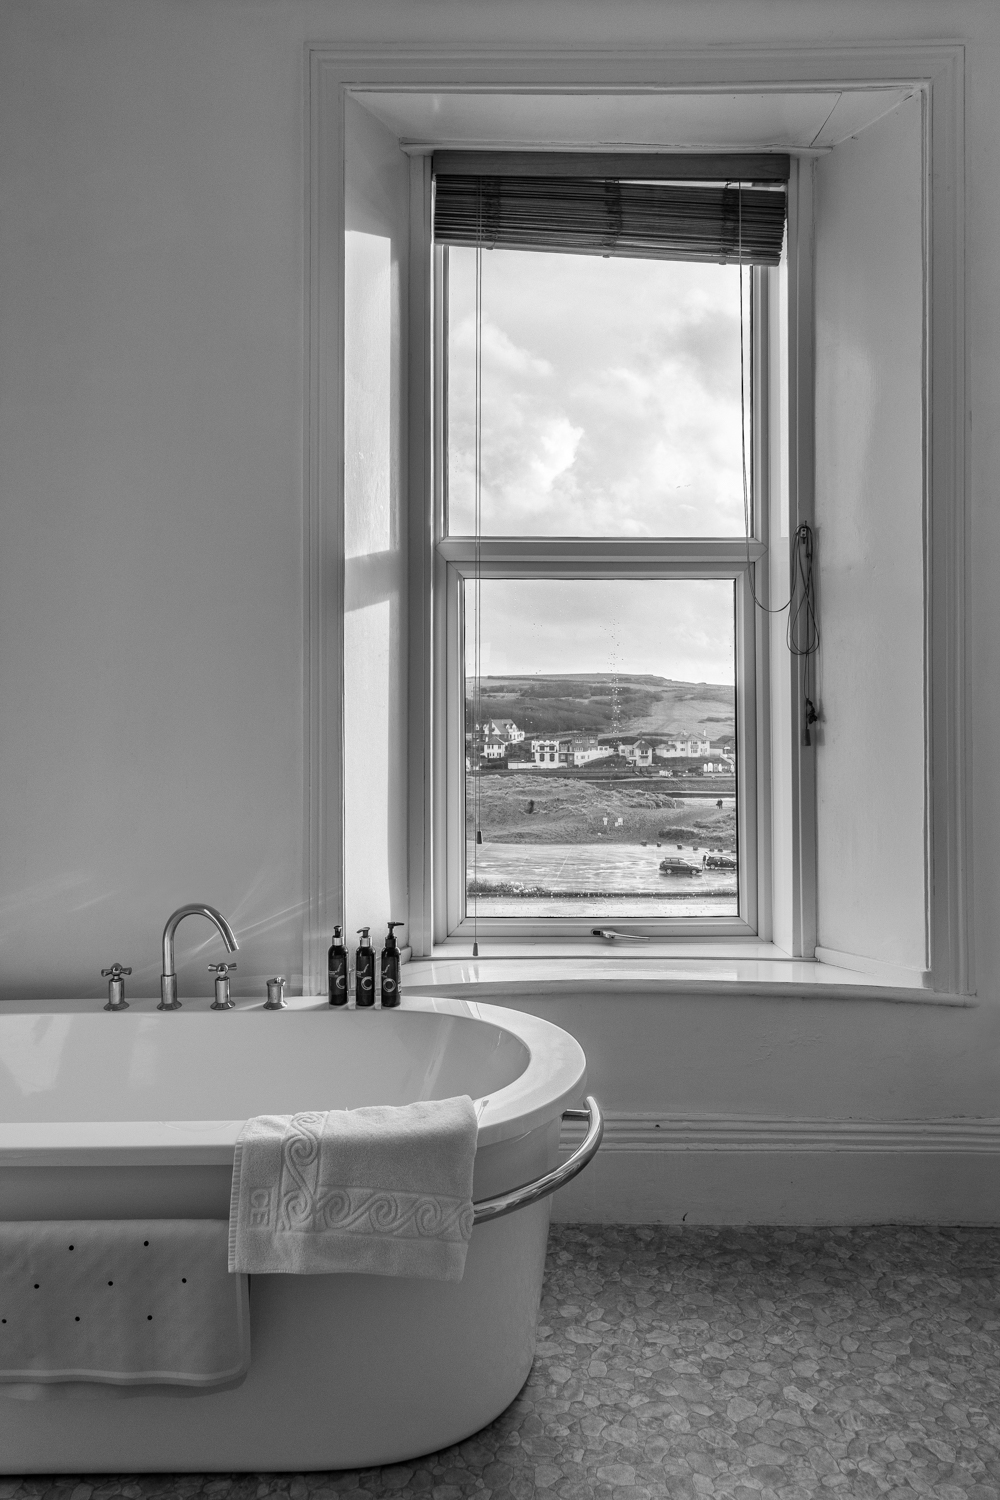 Black and White Bathroom with a View – the Edgcumbe Hotel, Bude, Cornwall, by Rick McEvoy Interior Photographer in Cornwall